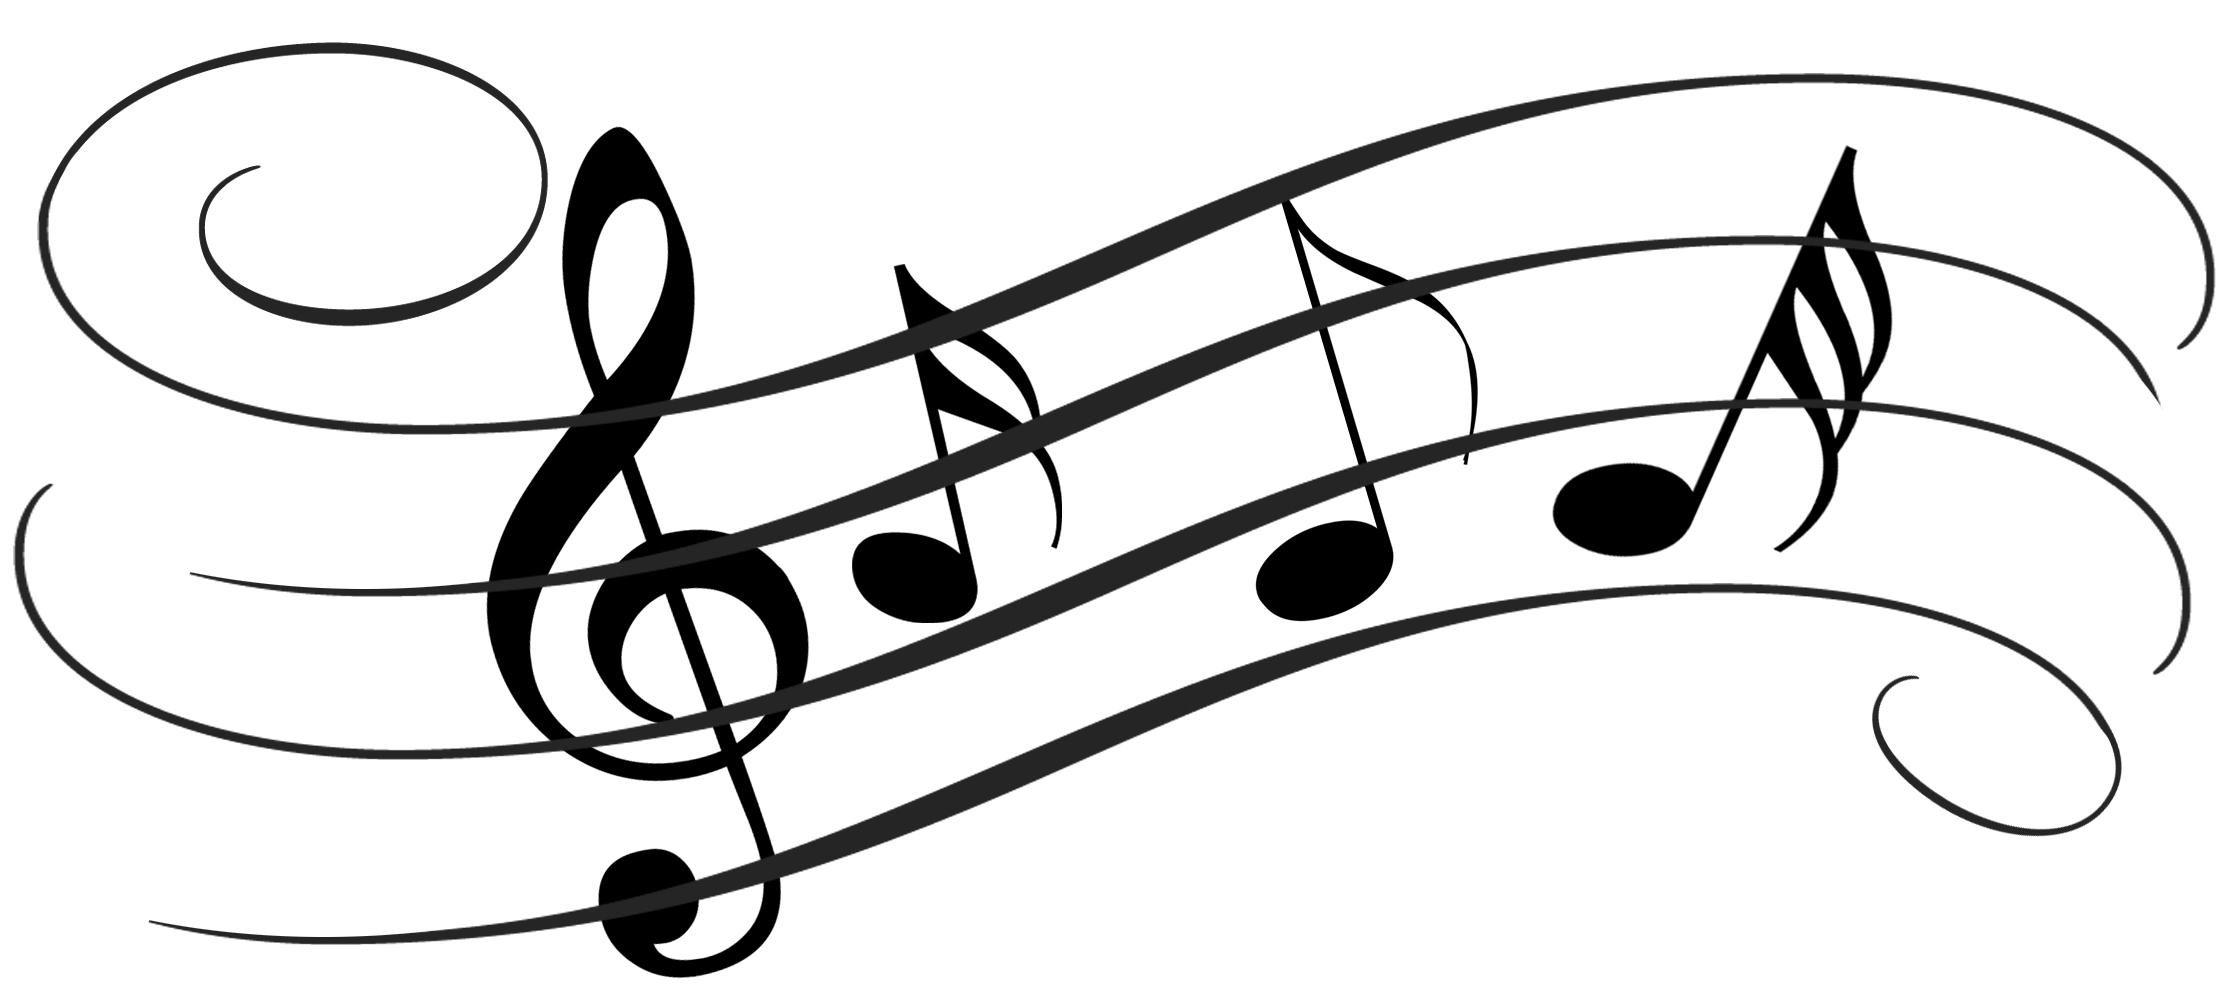 2236x1006 Sound Marching Band Music Chapel Clipart